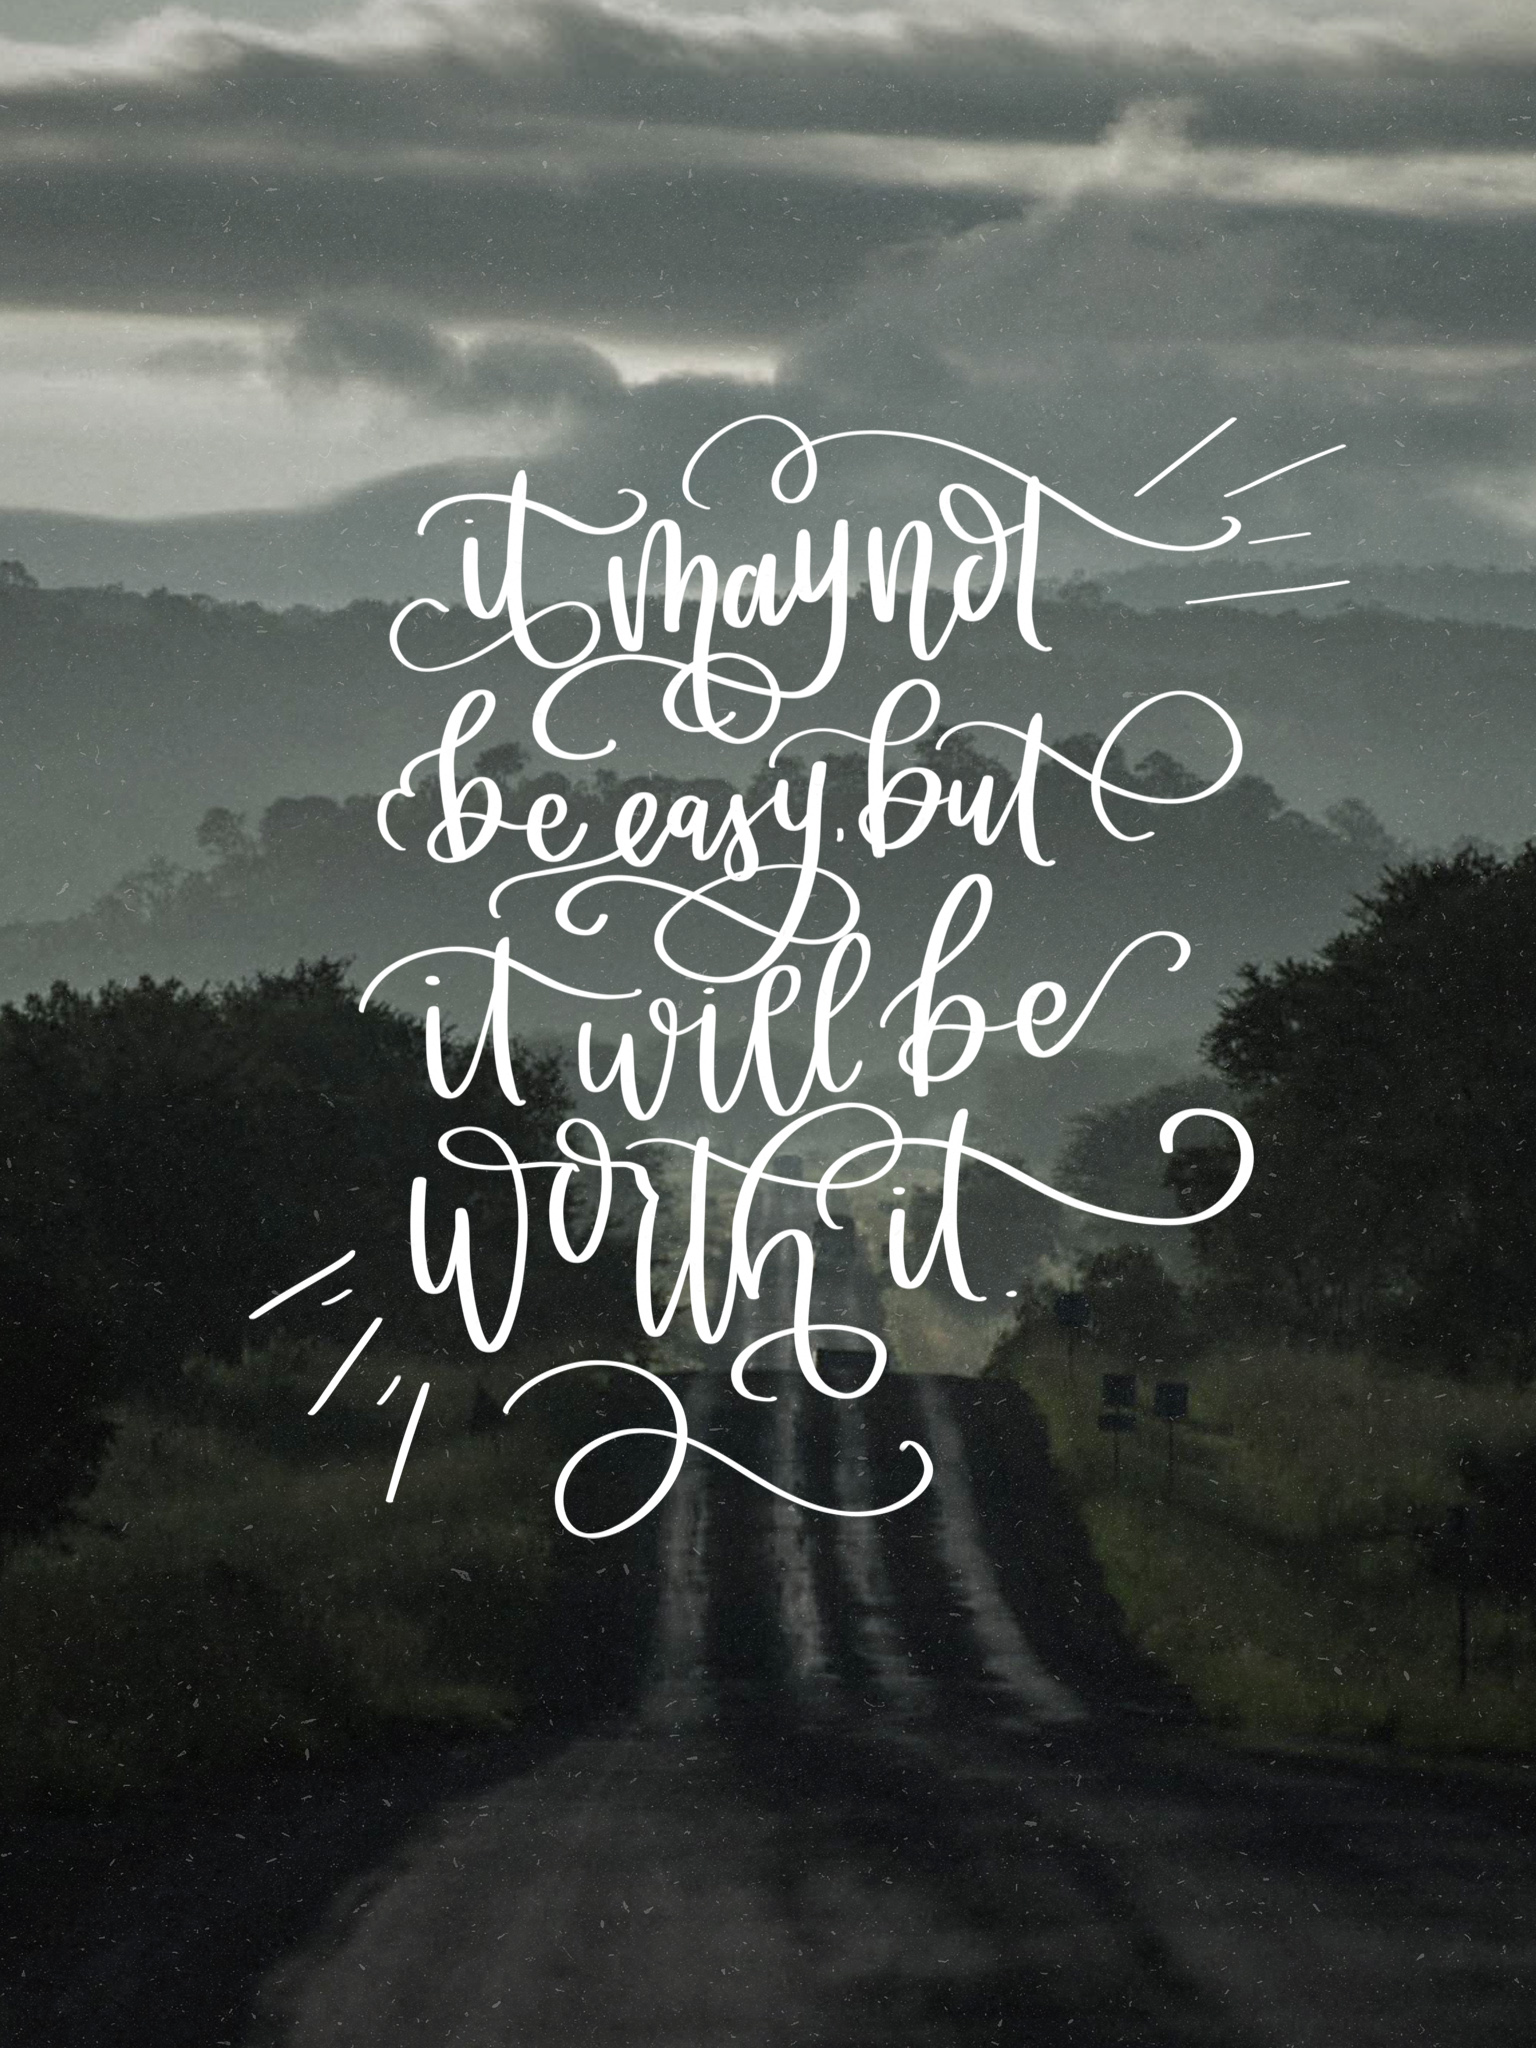 It Will Be Worth It February Handlettered Tech Wallpapers Lemon